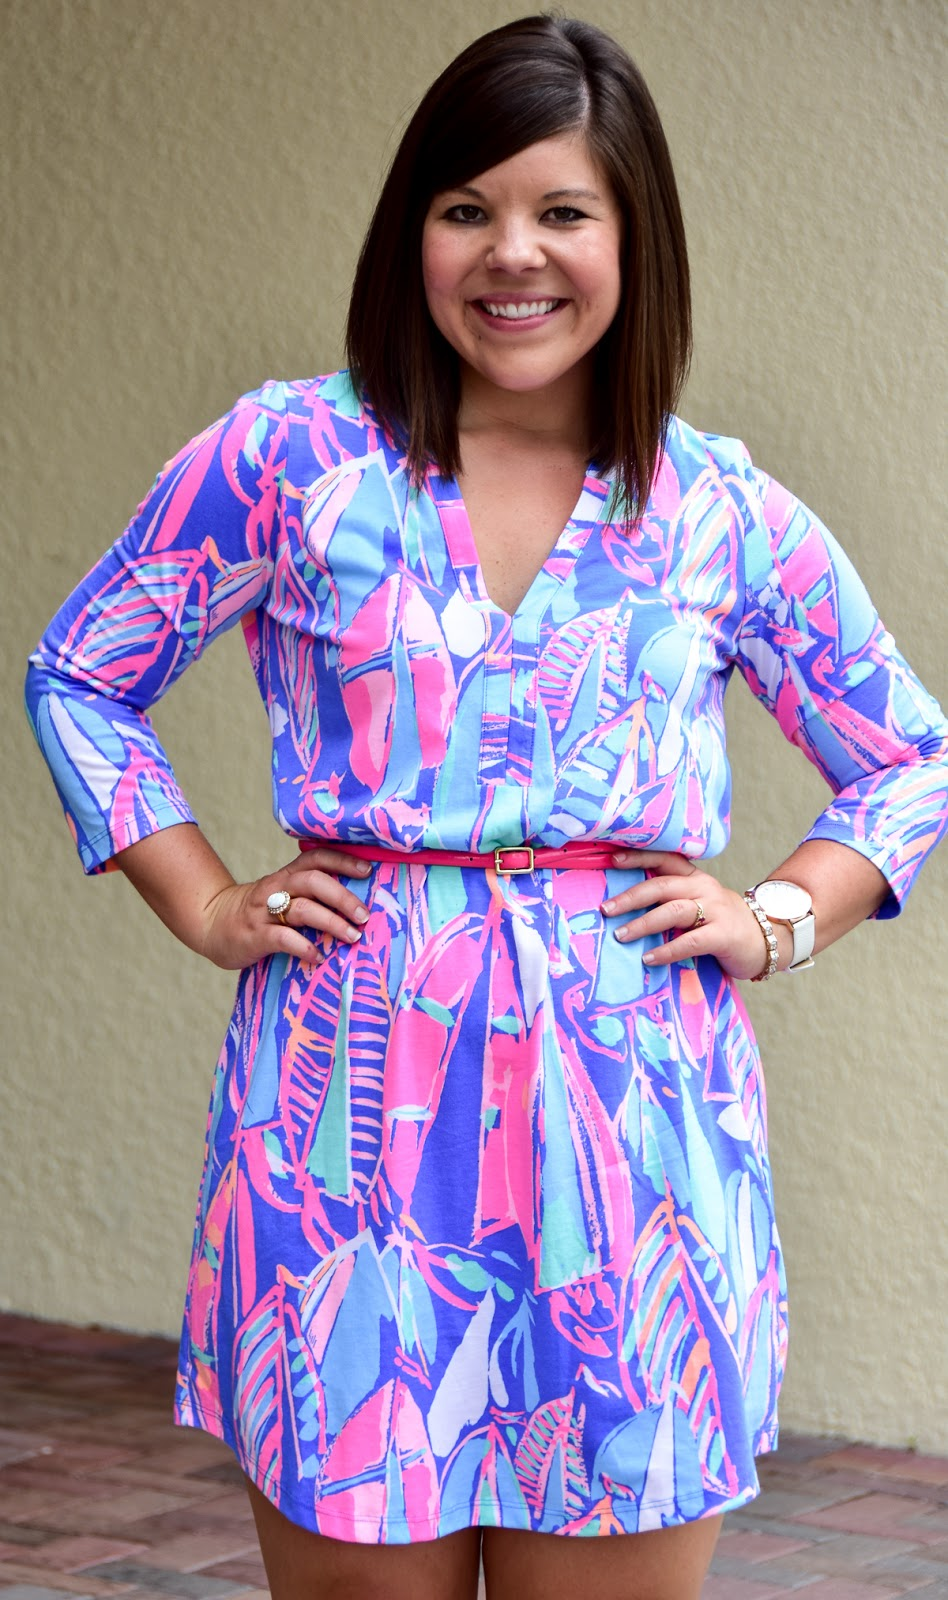 Let's Shop! Lilly Pulitzer After Party Sale!